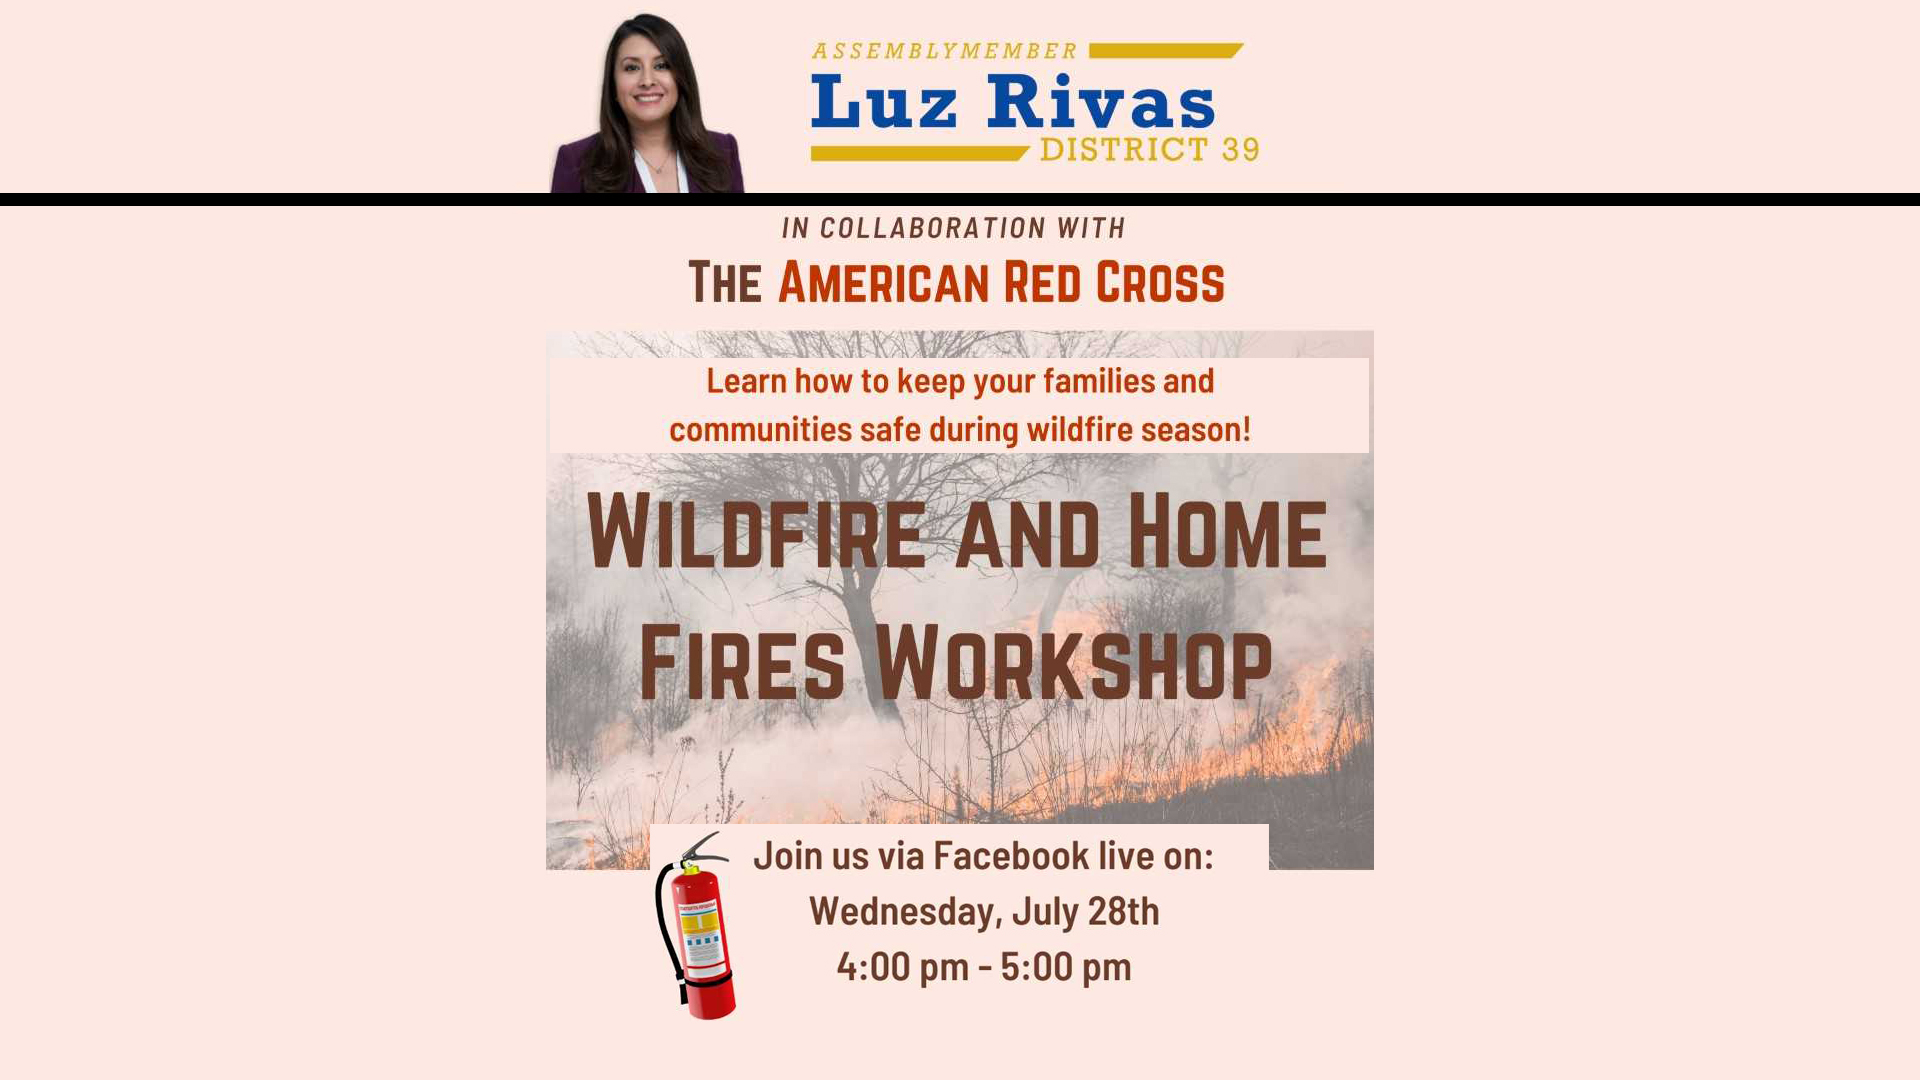 Wildfire and Home Fires Workshop